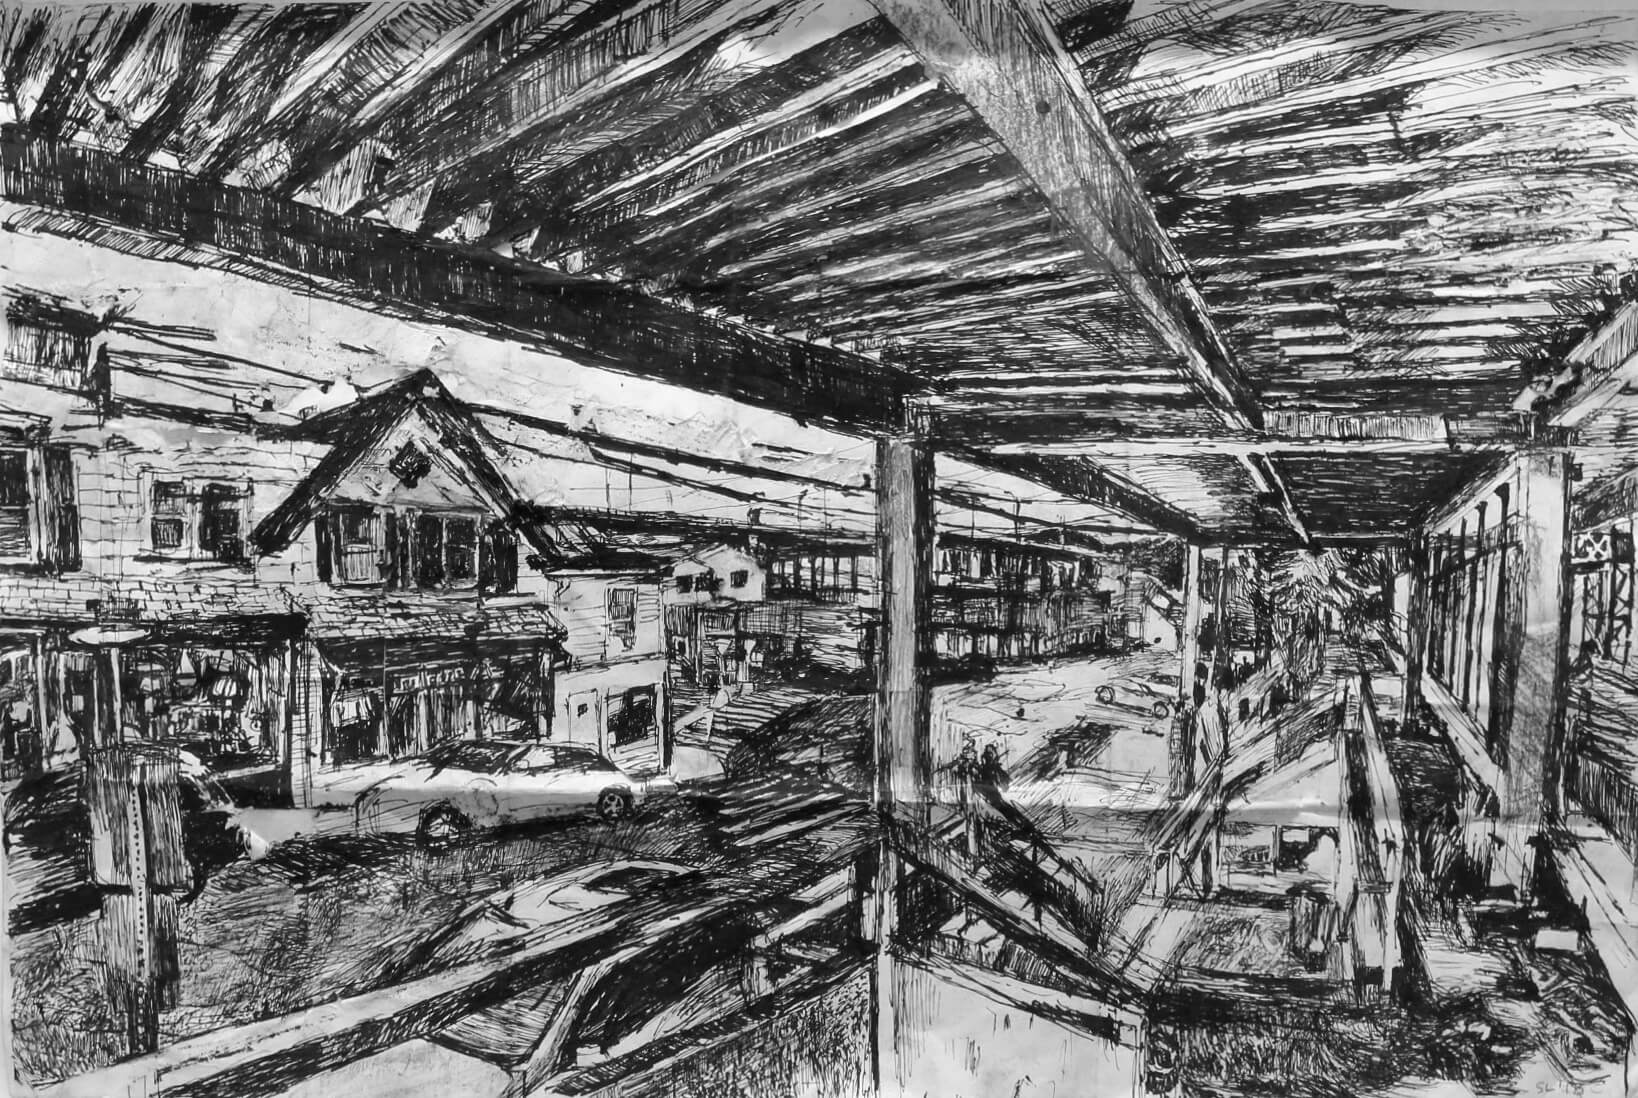 Stanley Lewis, Westport Train Station, 2013, ink on paper, 16 x 23.5 inches (From the Louis-Dreyfus Family Collection, courtesy of The William Louis-Dreyfus Foundation Inc.)